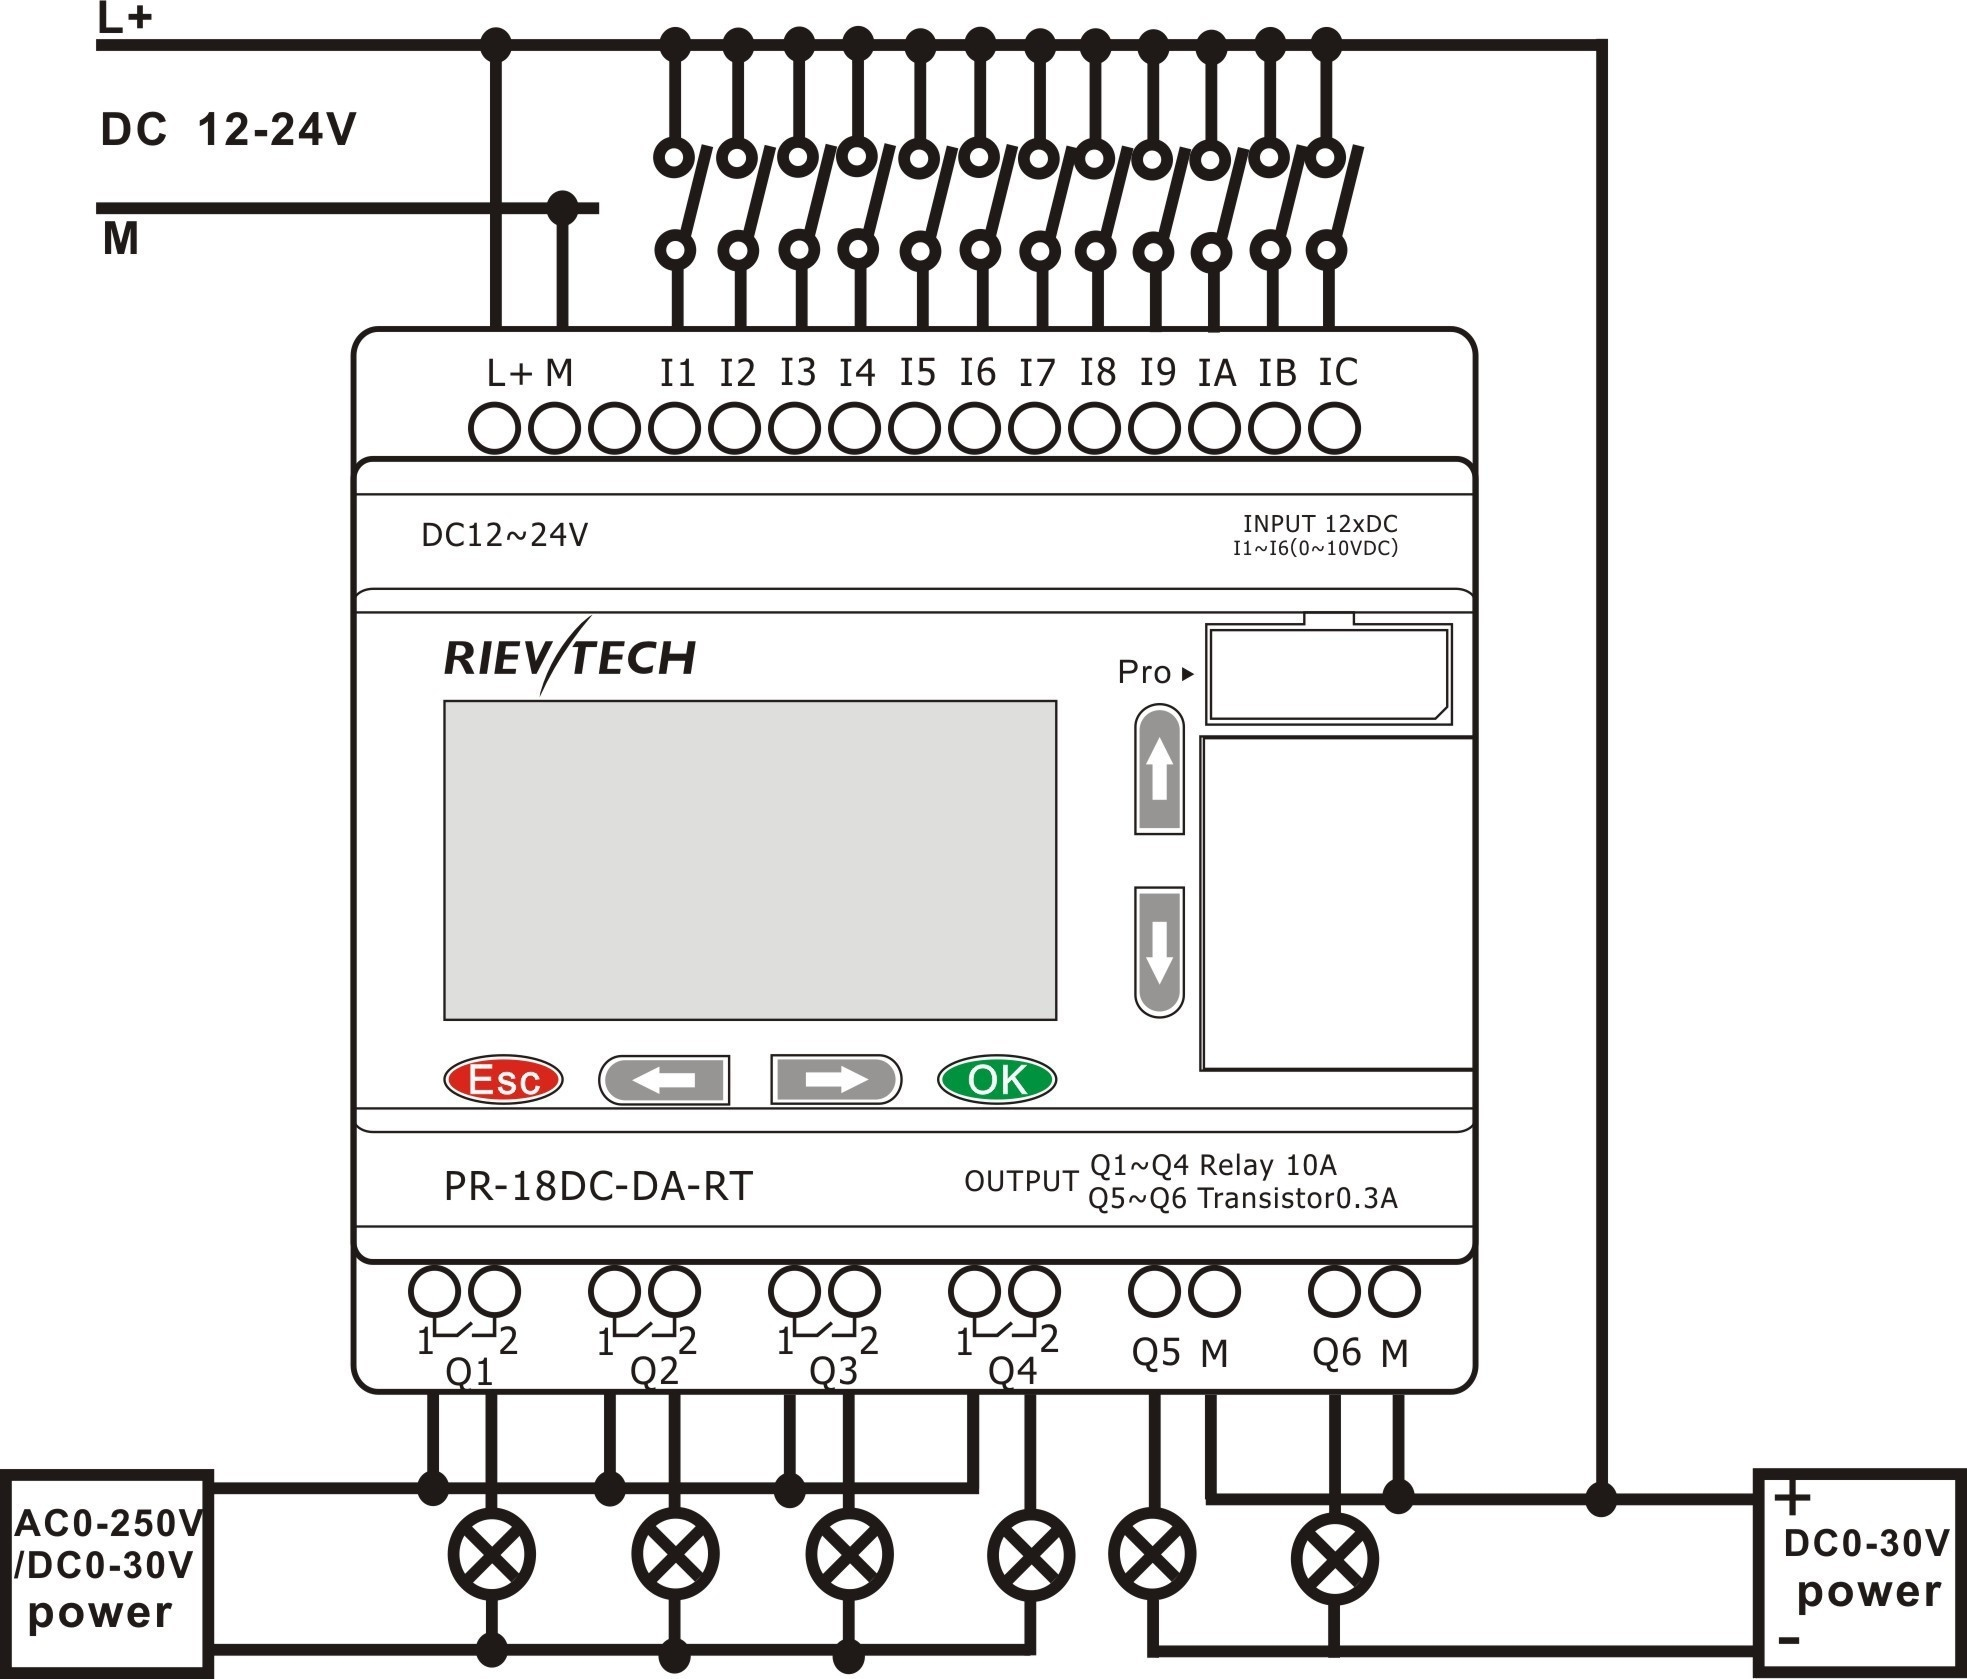 hight resolution of plc panel wiring diagram pdf plc wiring diagram symbols gambar wiring diagram relay best omron